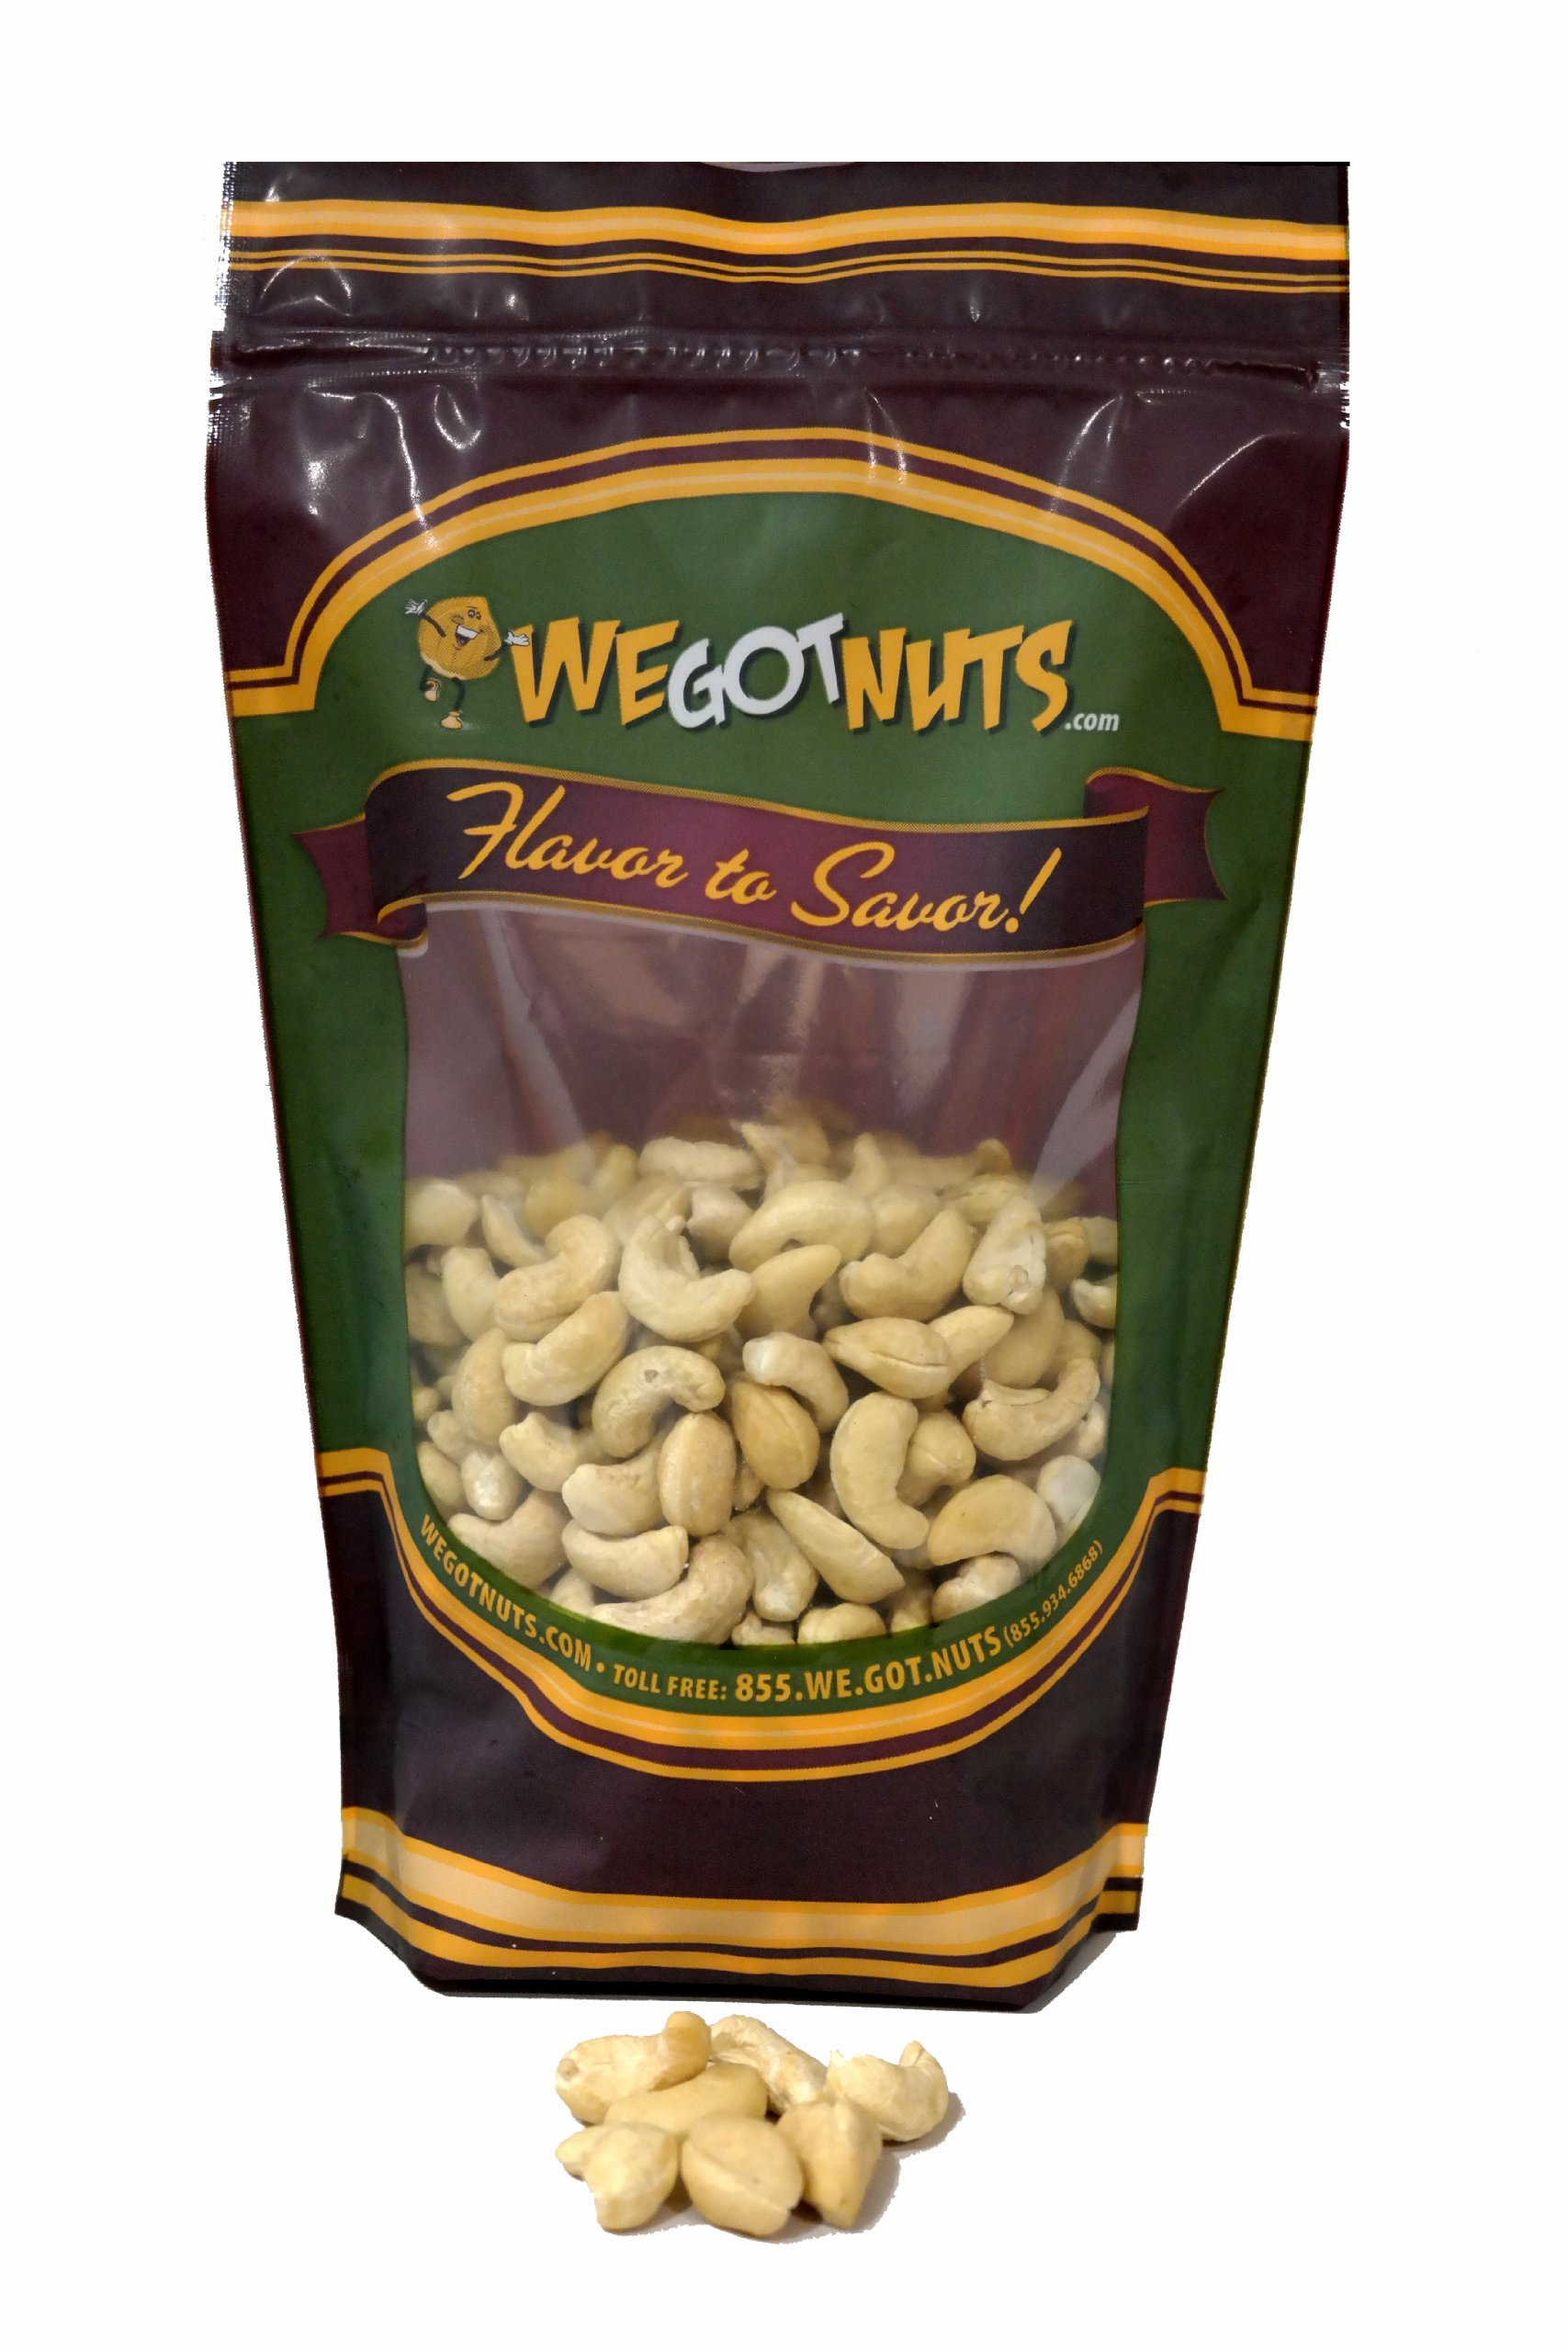 Cashews, Whole, Raw, 320, Bulk Nuts - We Got Nuts (10 LBS.) by We Got Nuts (Image #1)